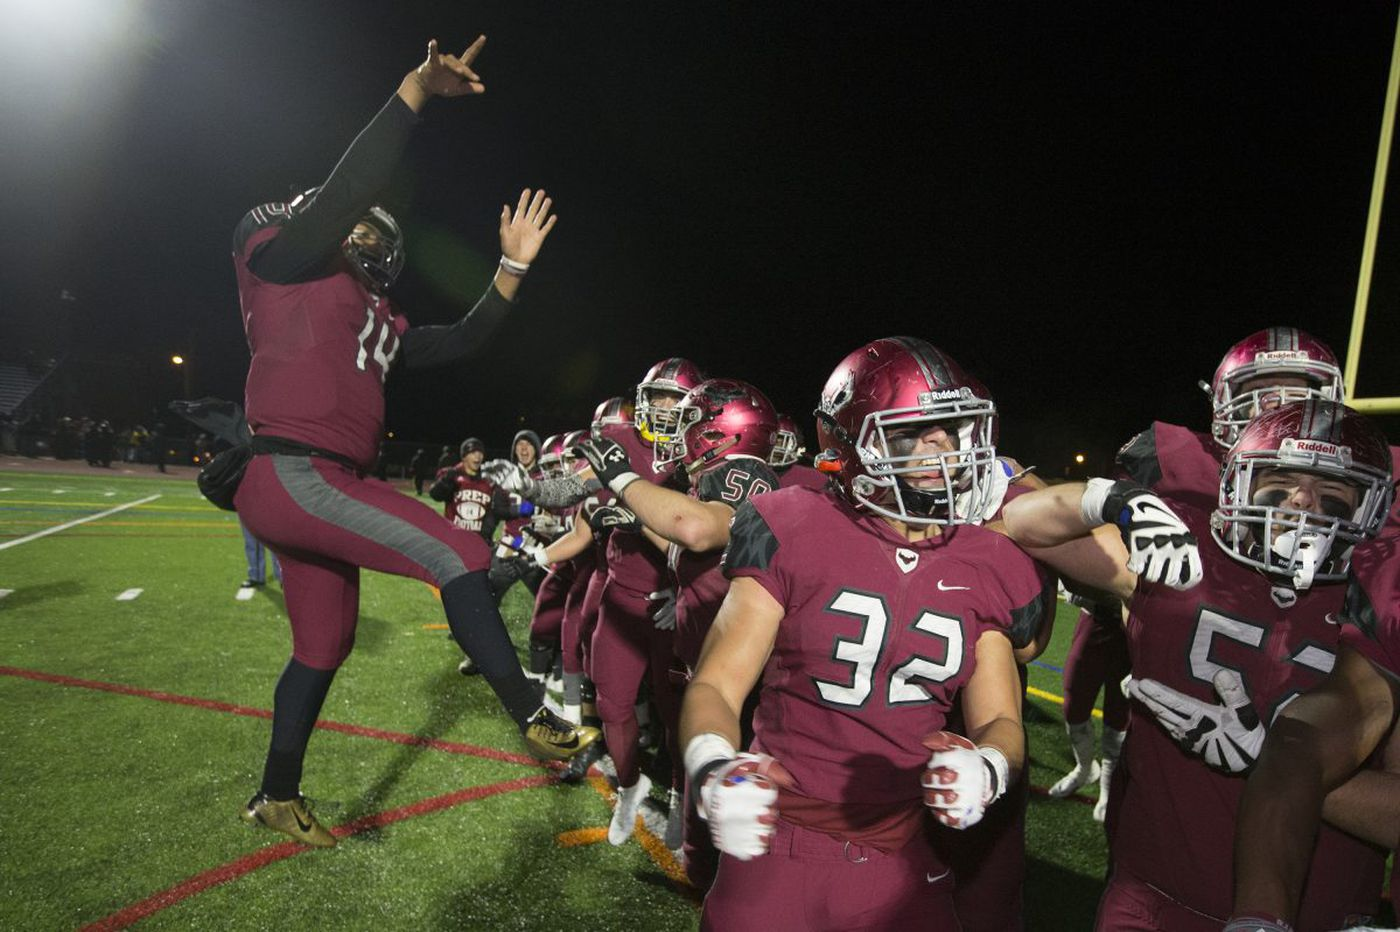 St. Joe's Prep beats La Salle to retain Catholic League 6A crown